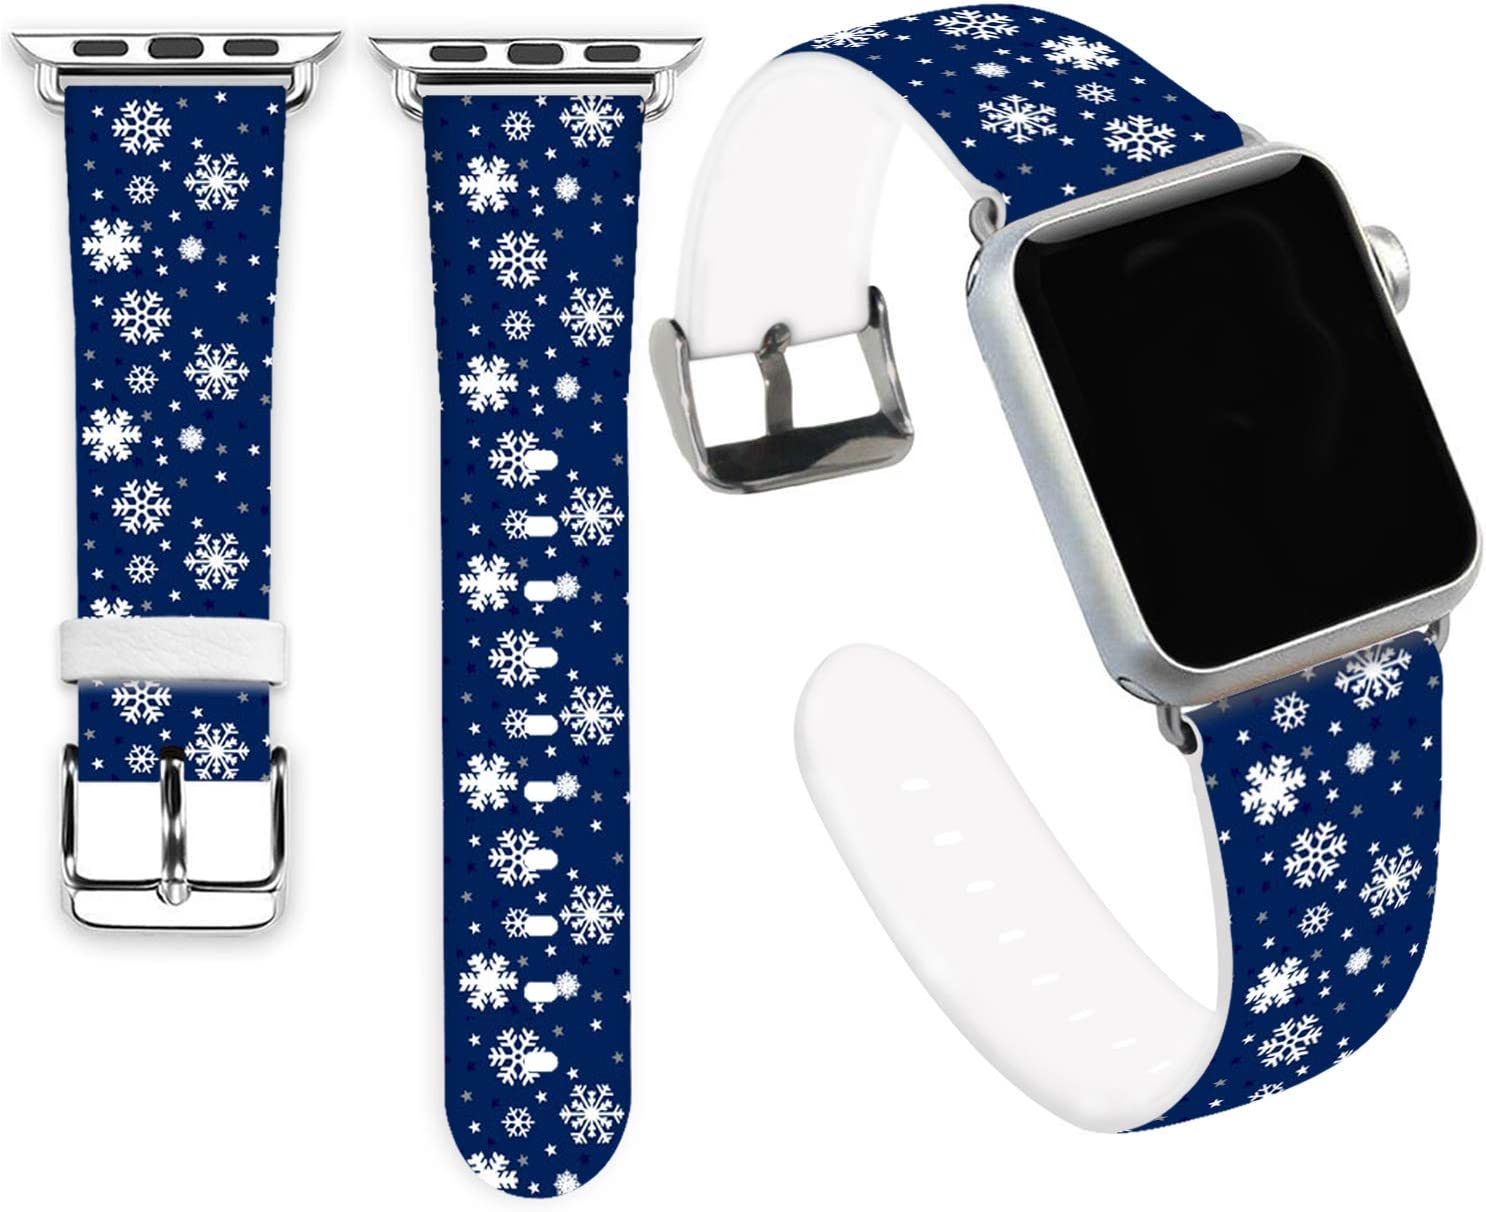 Snow Bands for iWatch 40mm/38mm,Jolook Soft Leather Sport Style Replacement Band Strap for iWatch 40mm 38mm Series 6/5/4/3/2/1 - Christmas Snow